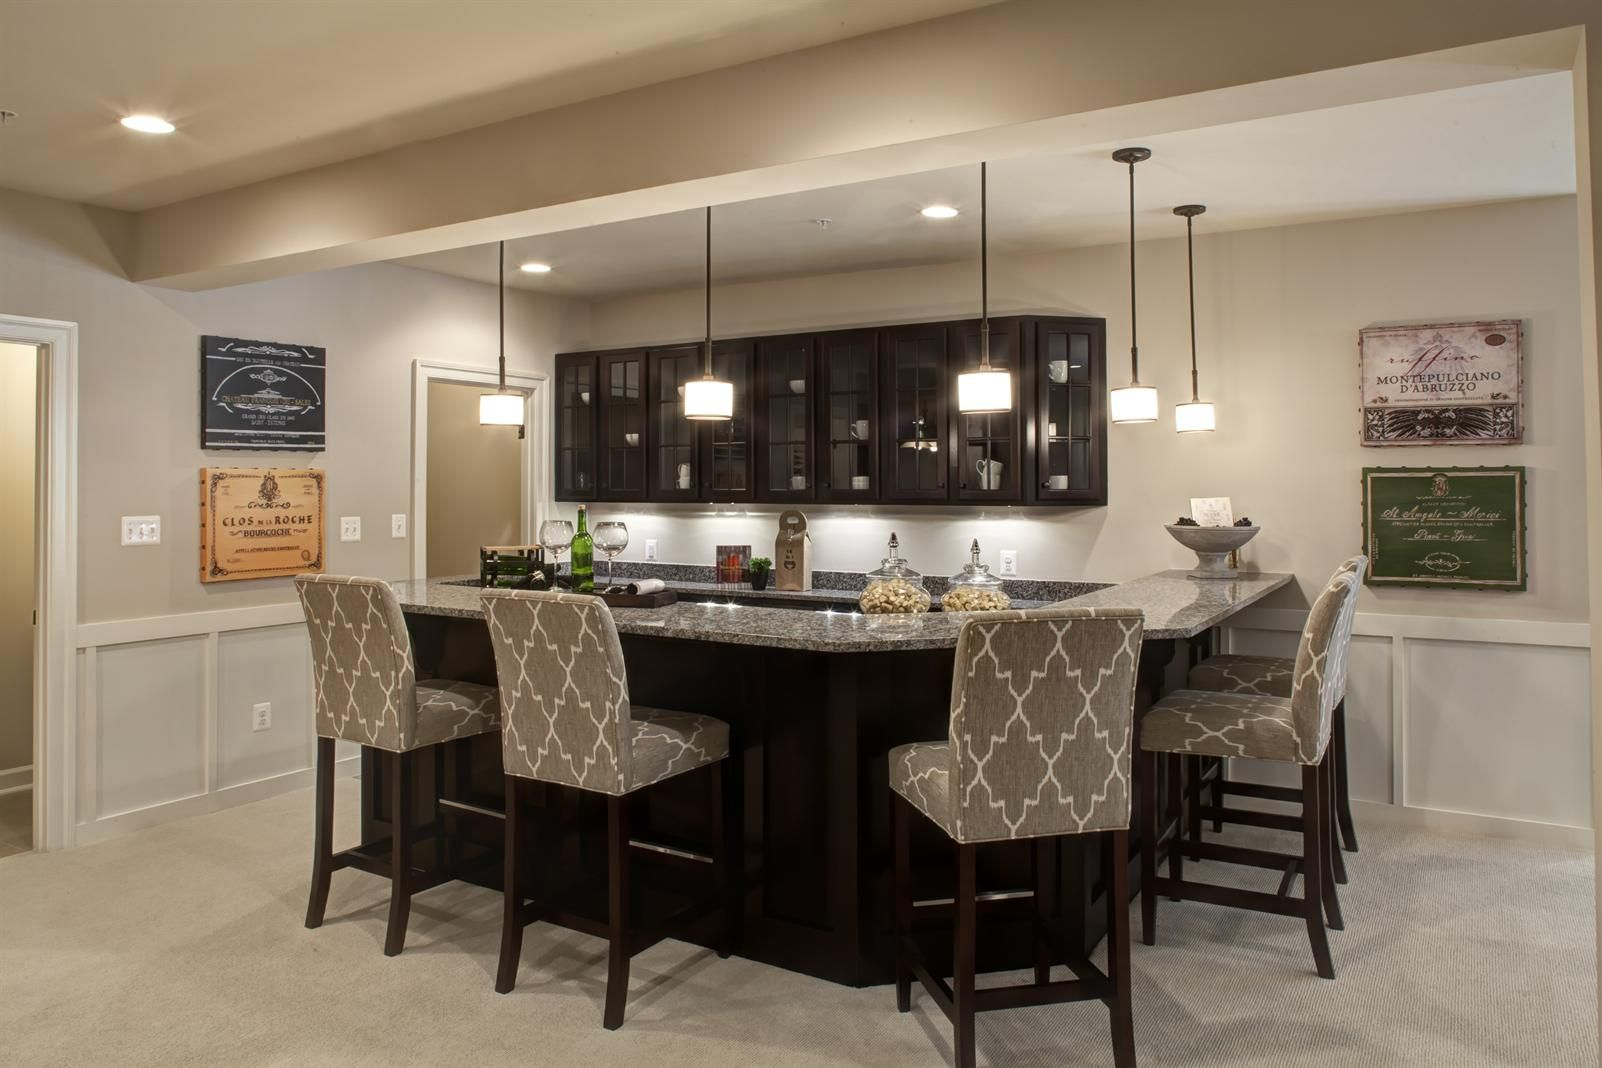 new clifton park ii home model for sale nvhomes bar ideas new clifton park ii home model for sale nvhomes